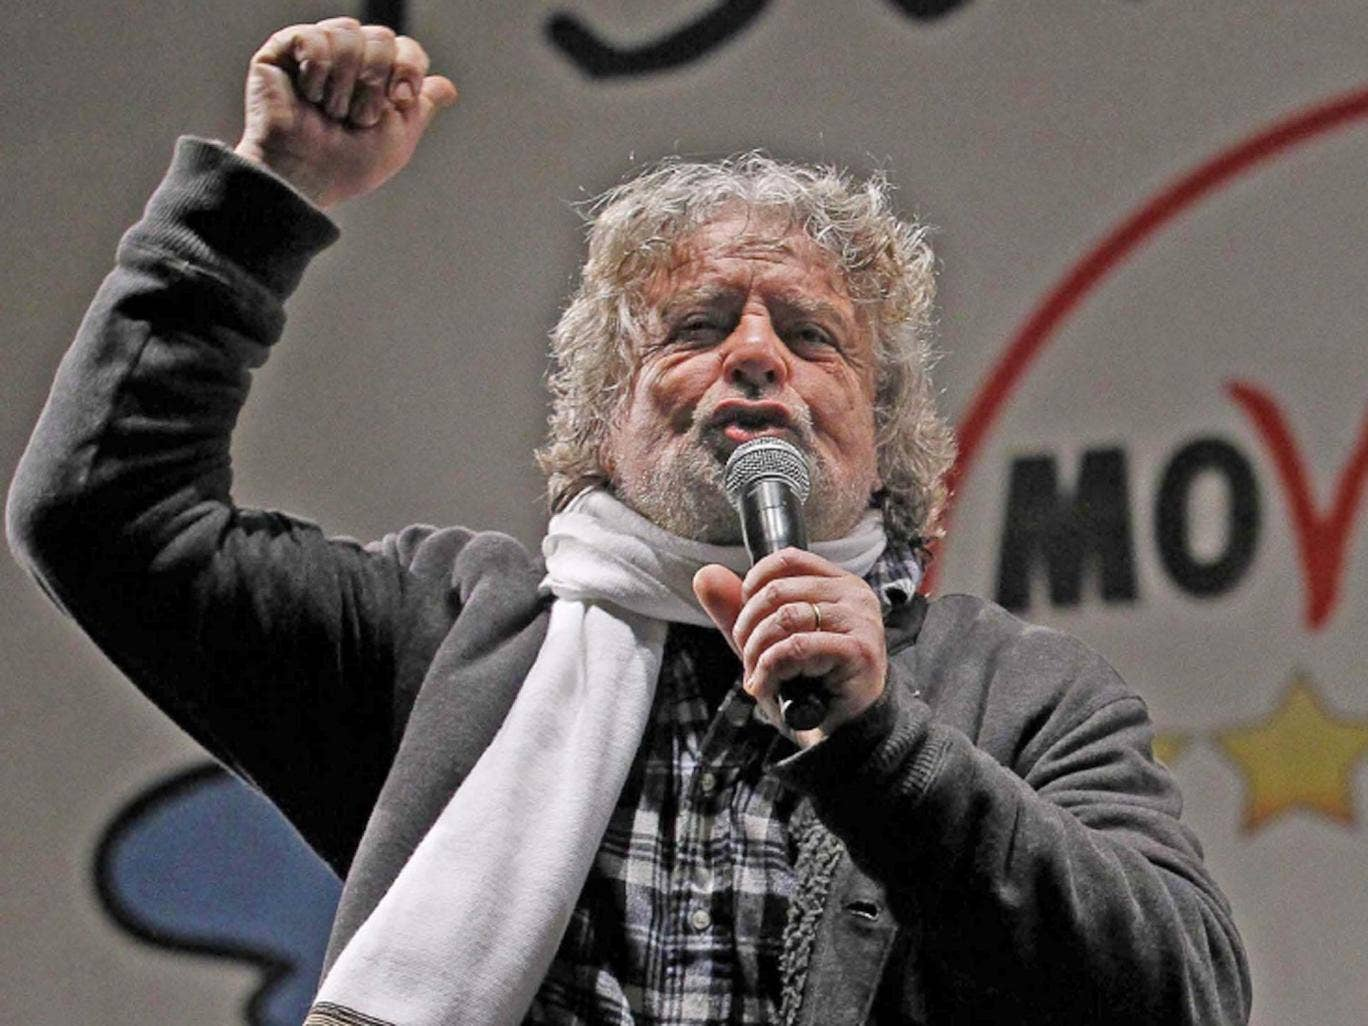 Beppe Grilloa,  a charismatic 64-year-old comedian from Genoa whose anti-political non-party, the Five-Star Movement, has come roaring